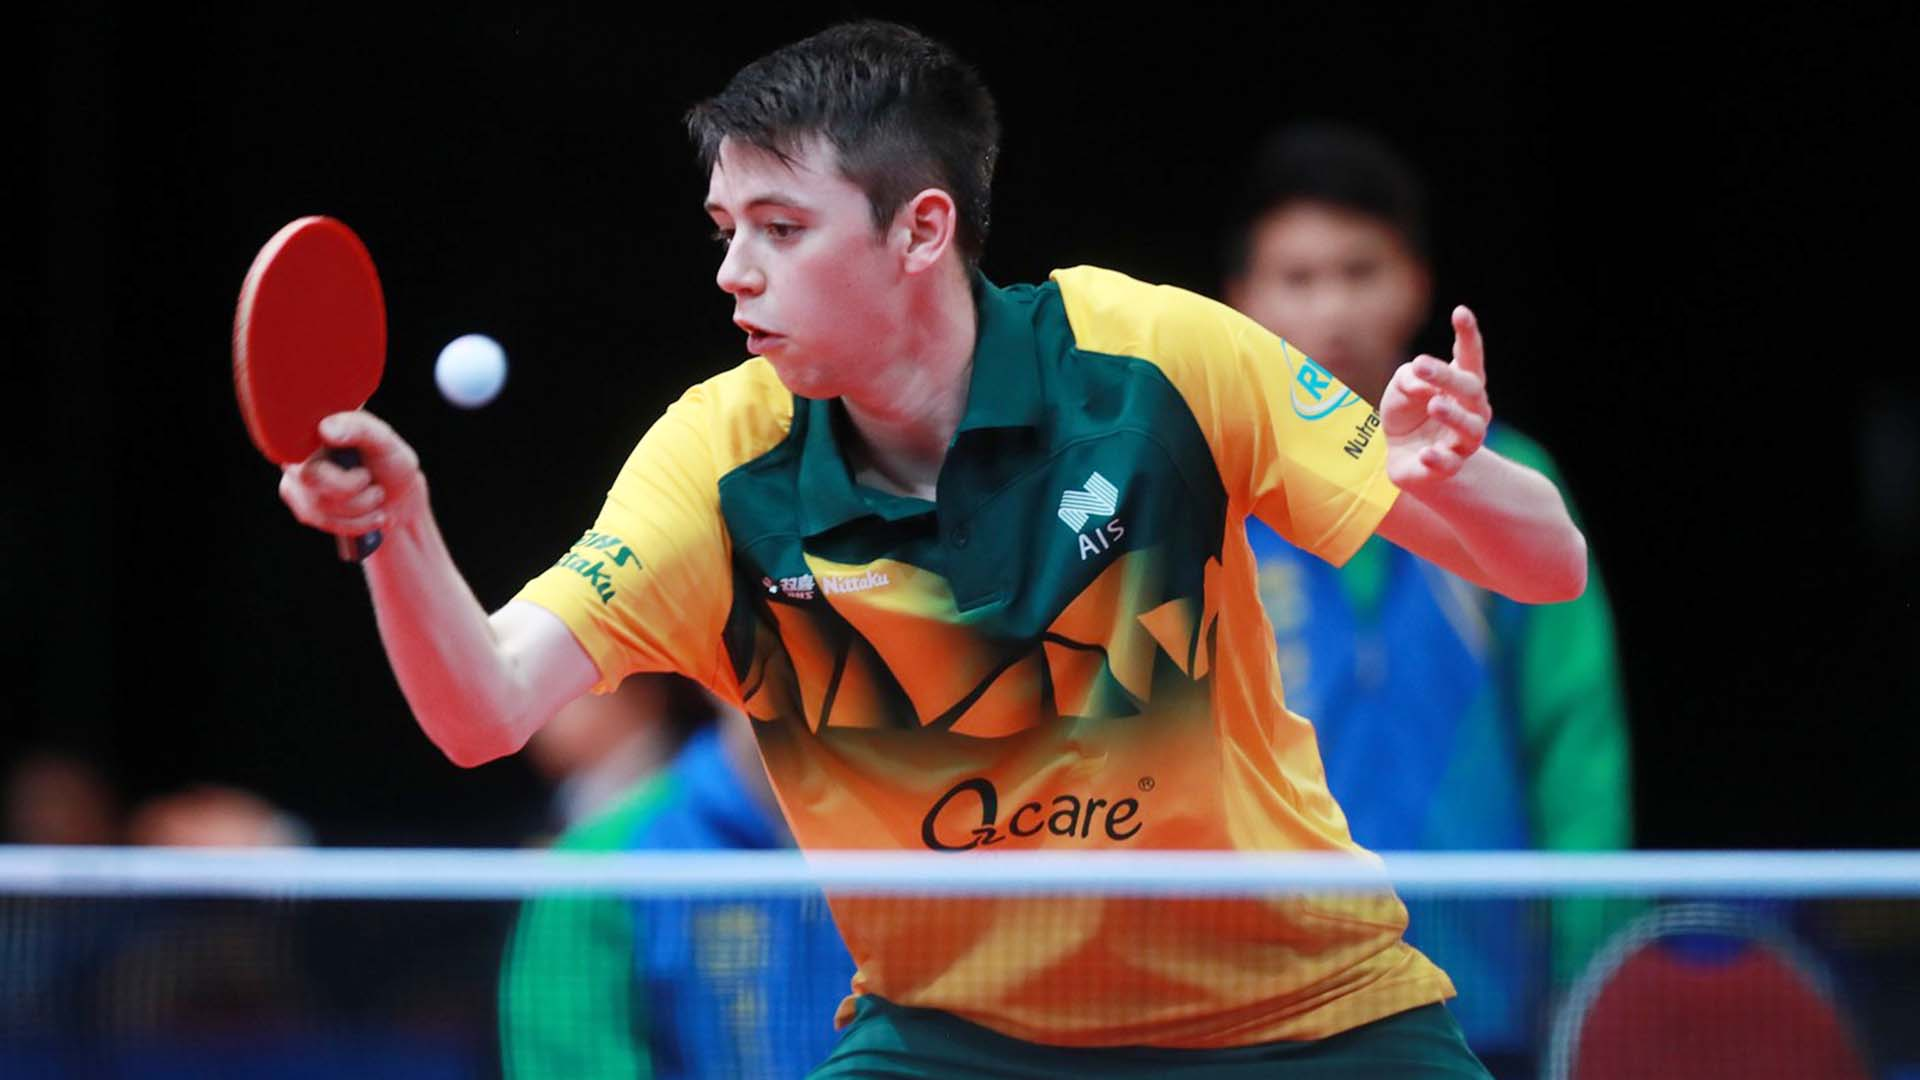 Australia's Jake Duffy Seamaster ITTF Training Camp experience